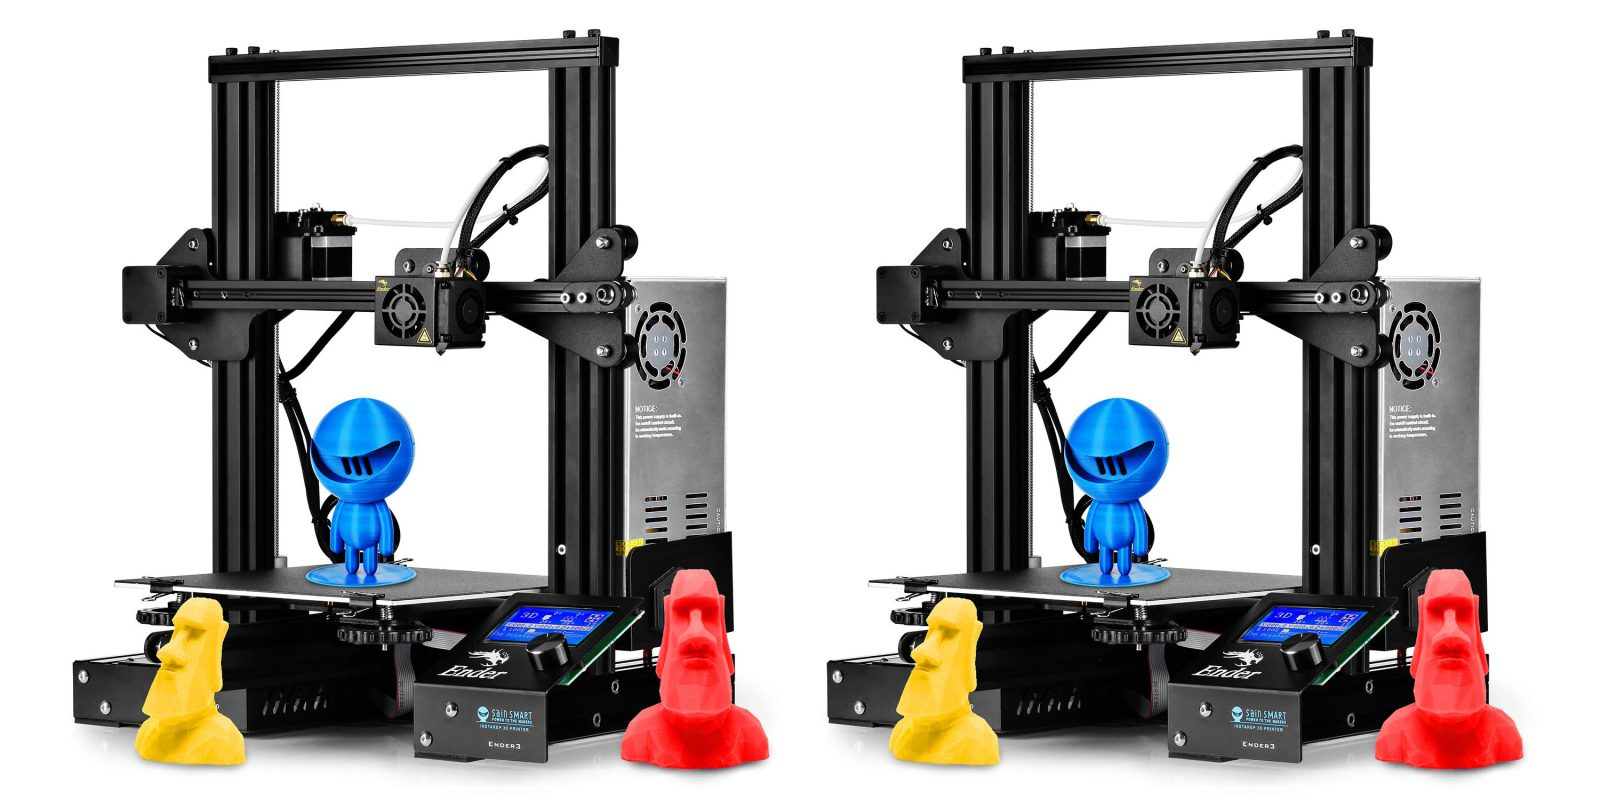 The Creality Ender-3 3D Printer is back at a low of $180 (Today only